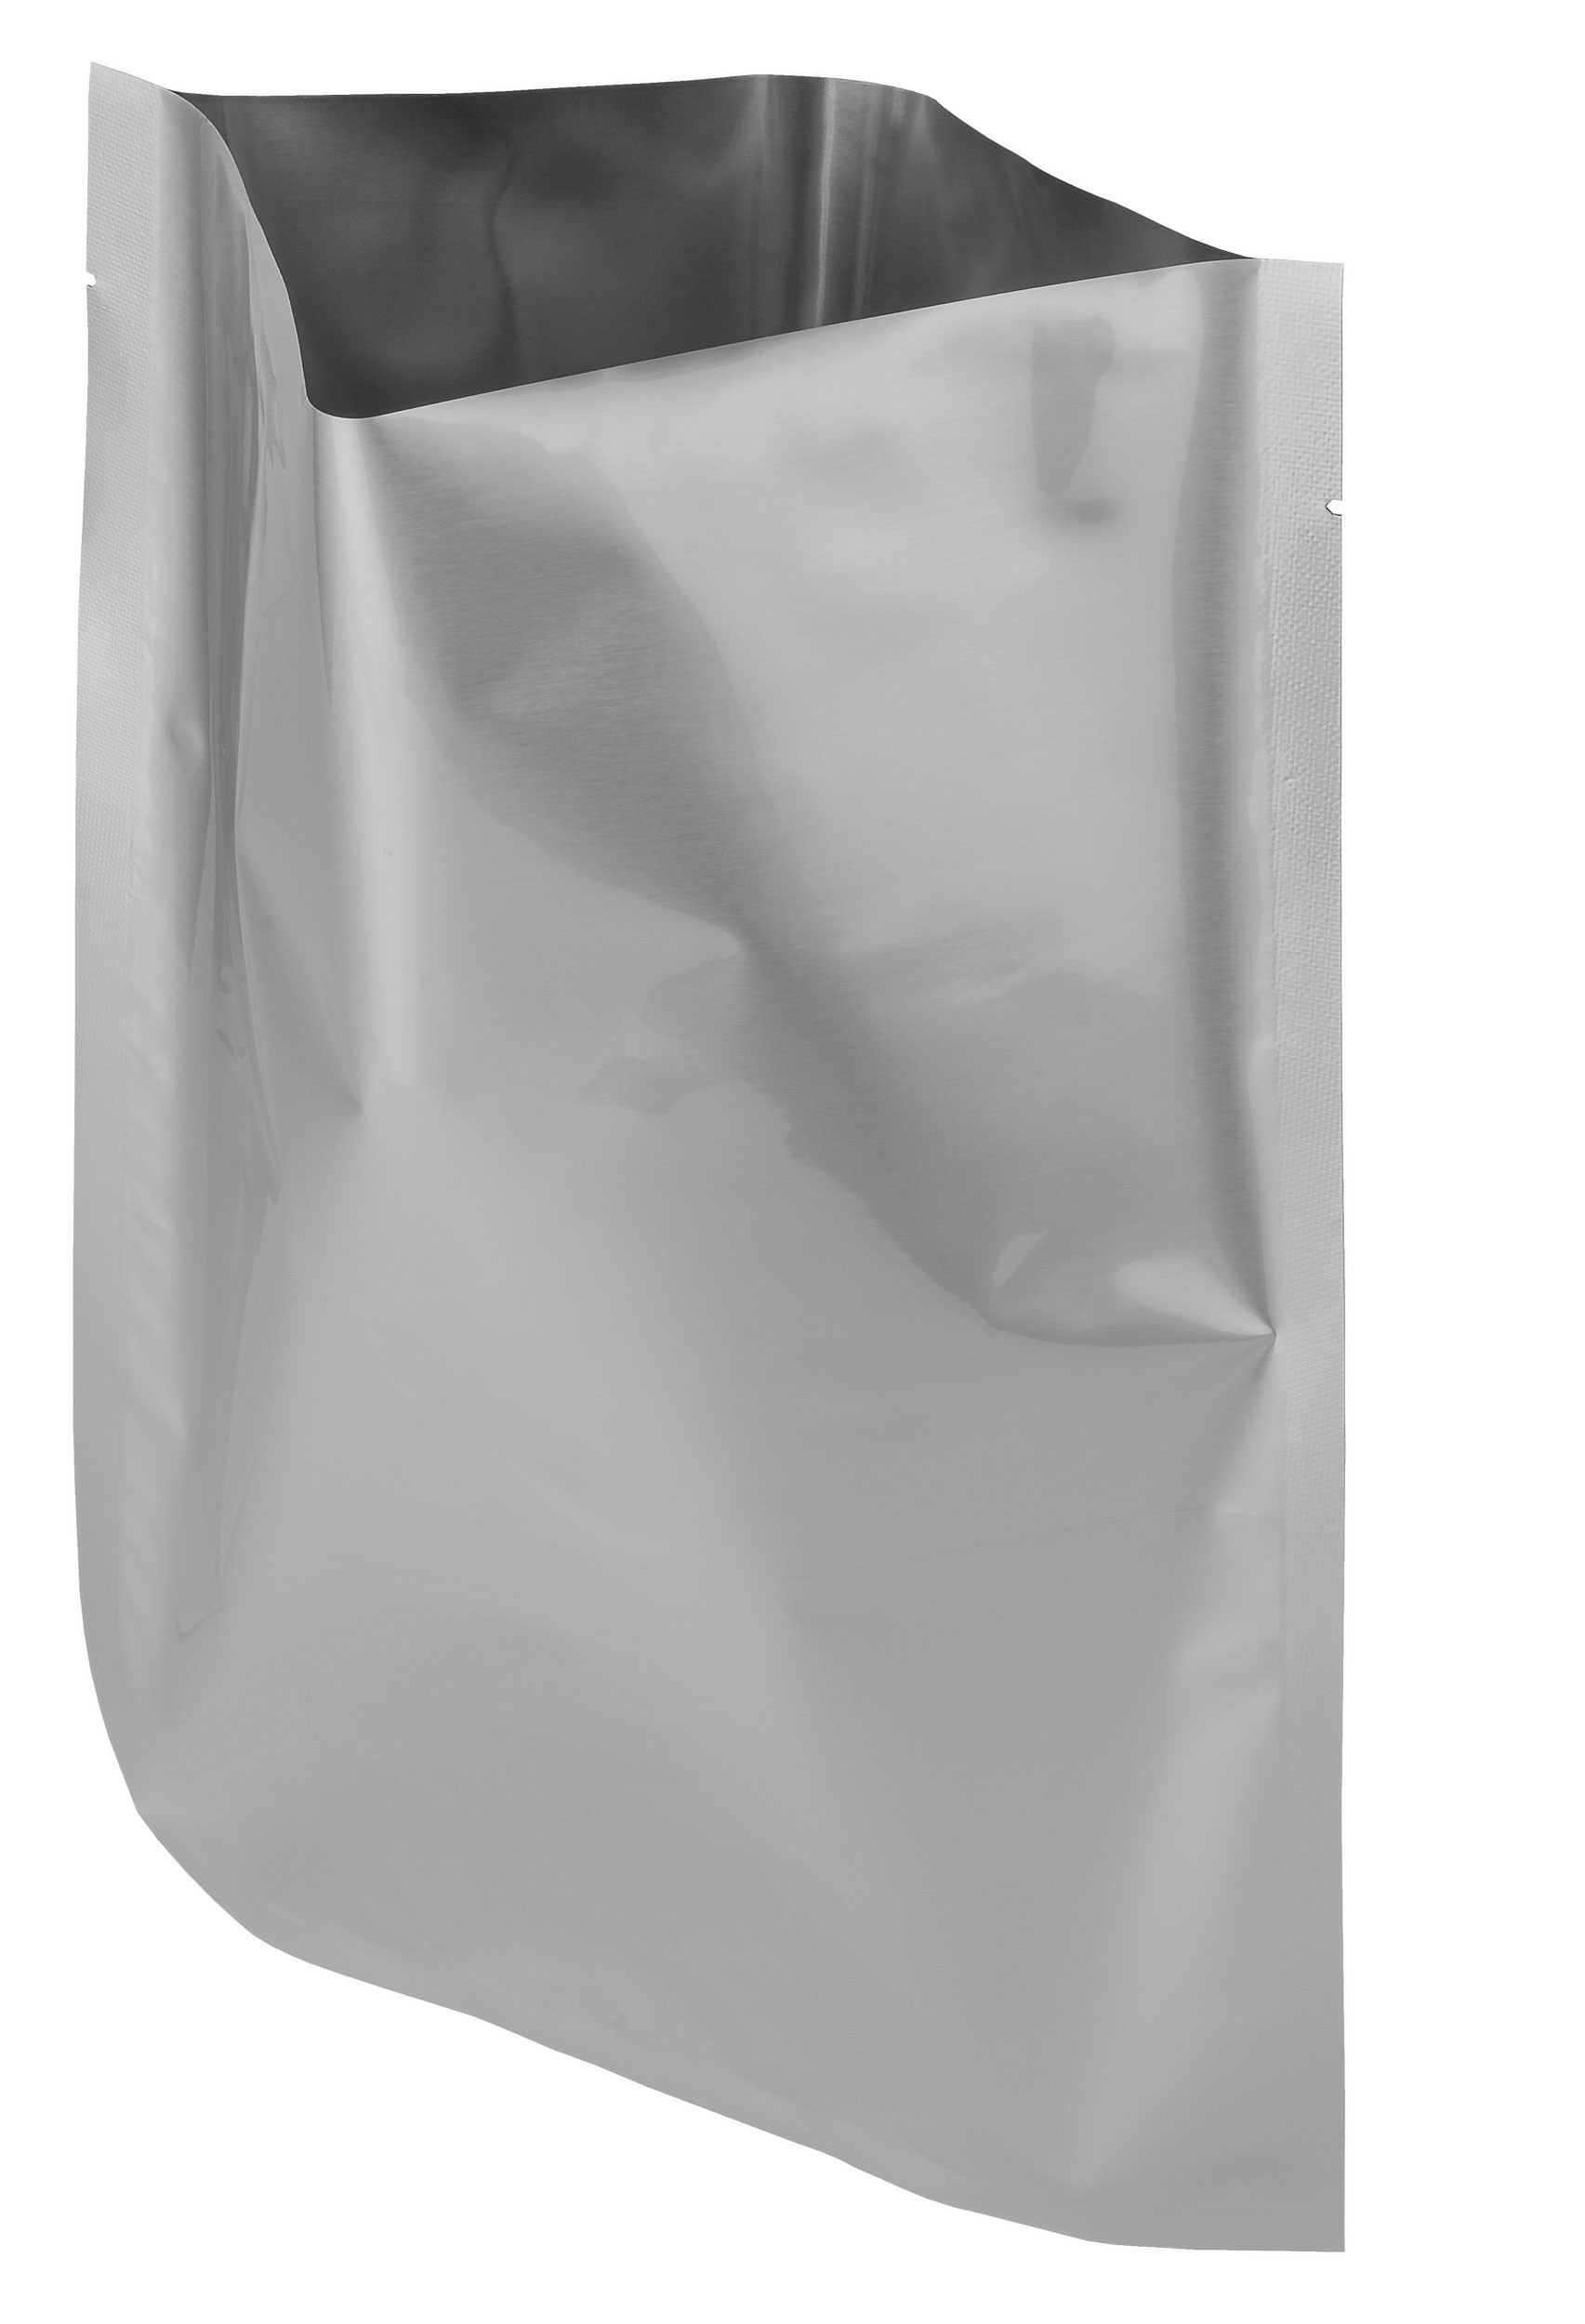 "Dry-Packs 10x14"" 1-Gallon Mylar Bags, 100PK"